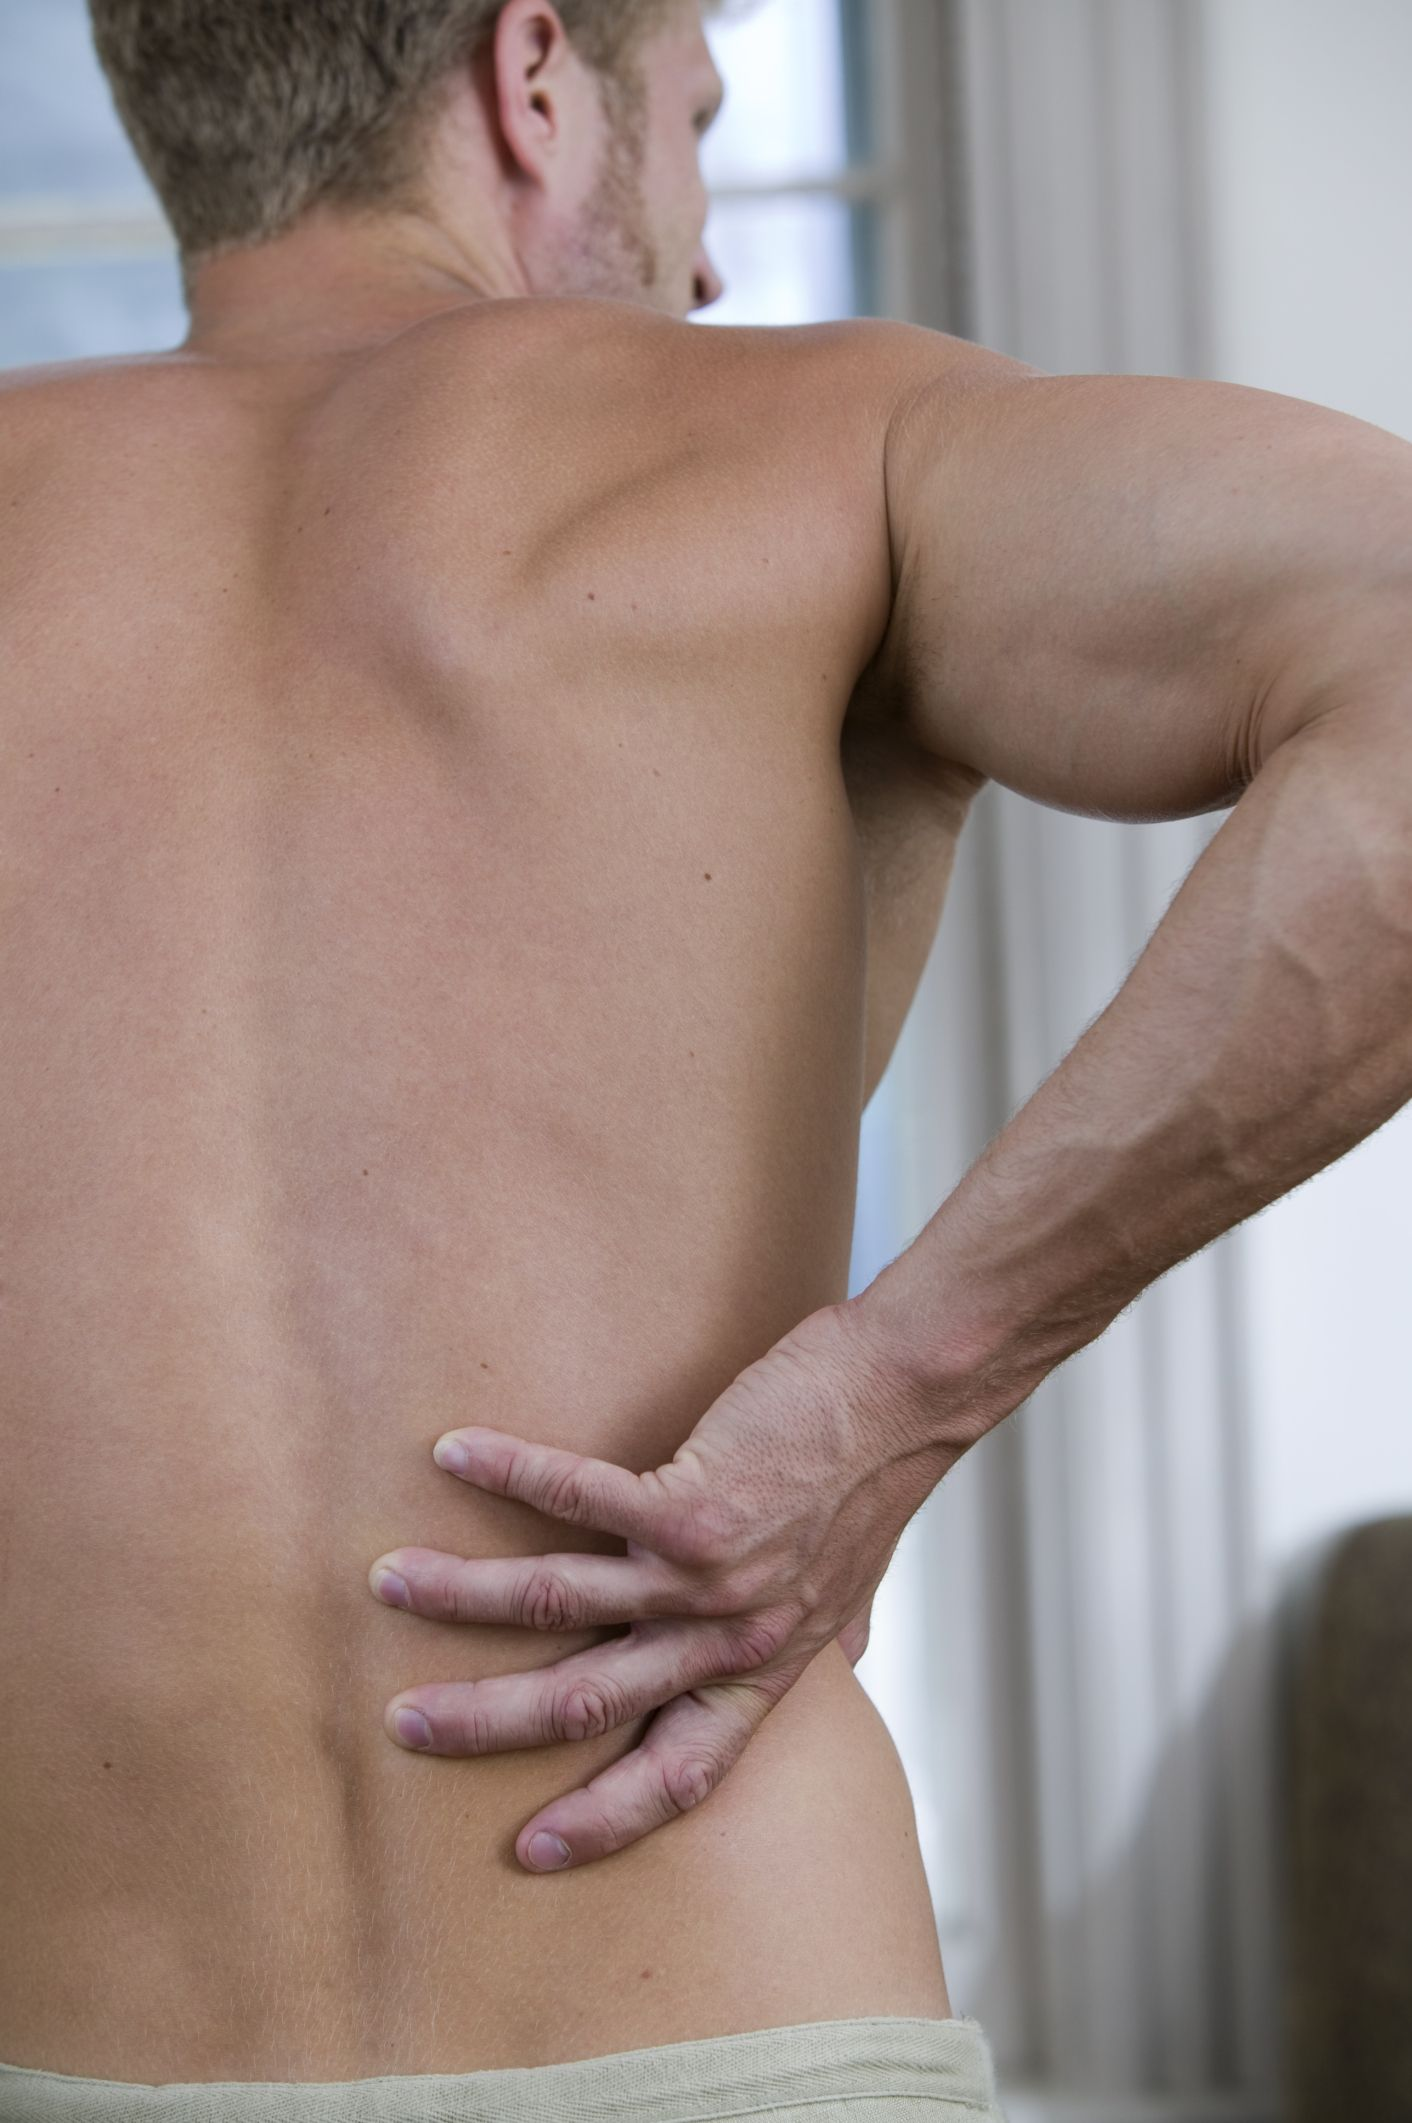 #backpain #lowbackpain Geelong Spine Centre http://bit.ly/1sJiY9U #backpaintreatment